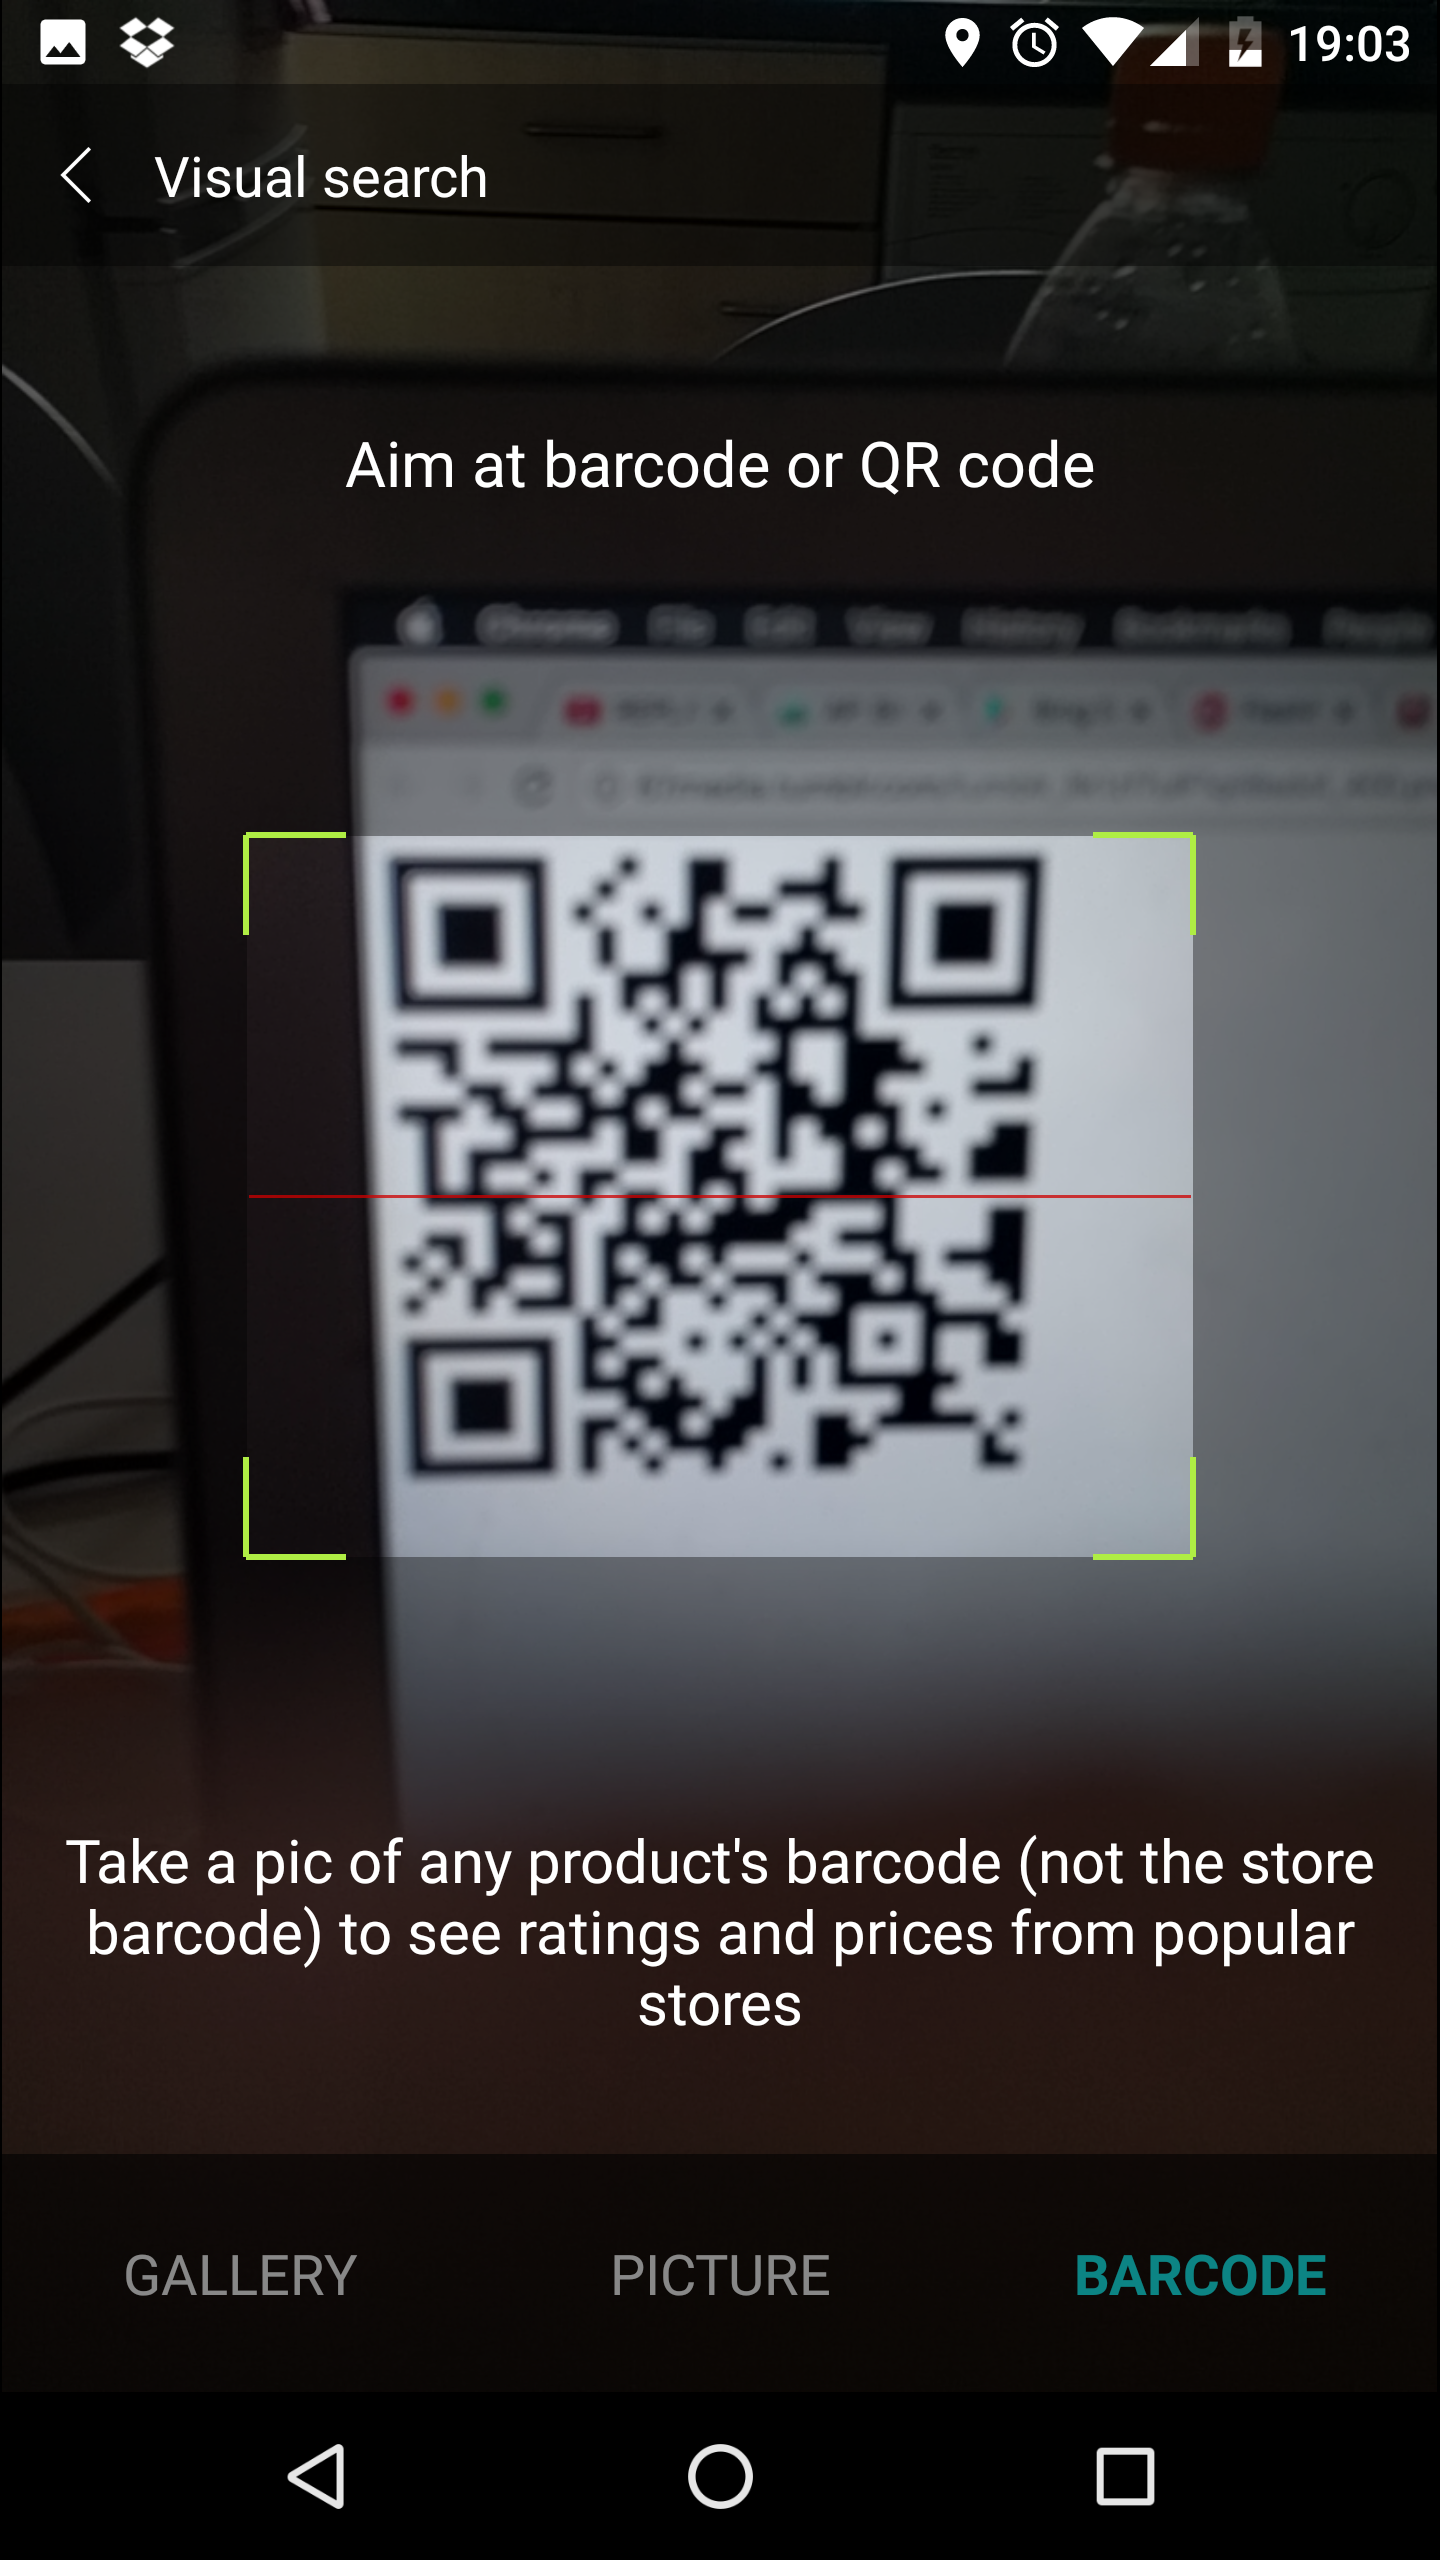 Get info about your photos & surroundings - Android ...